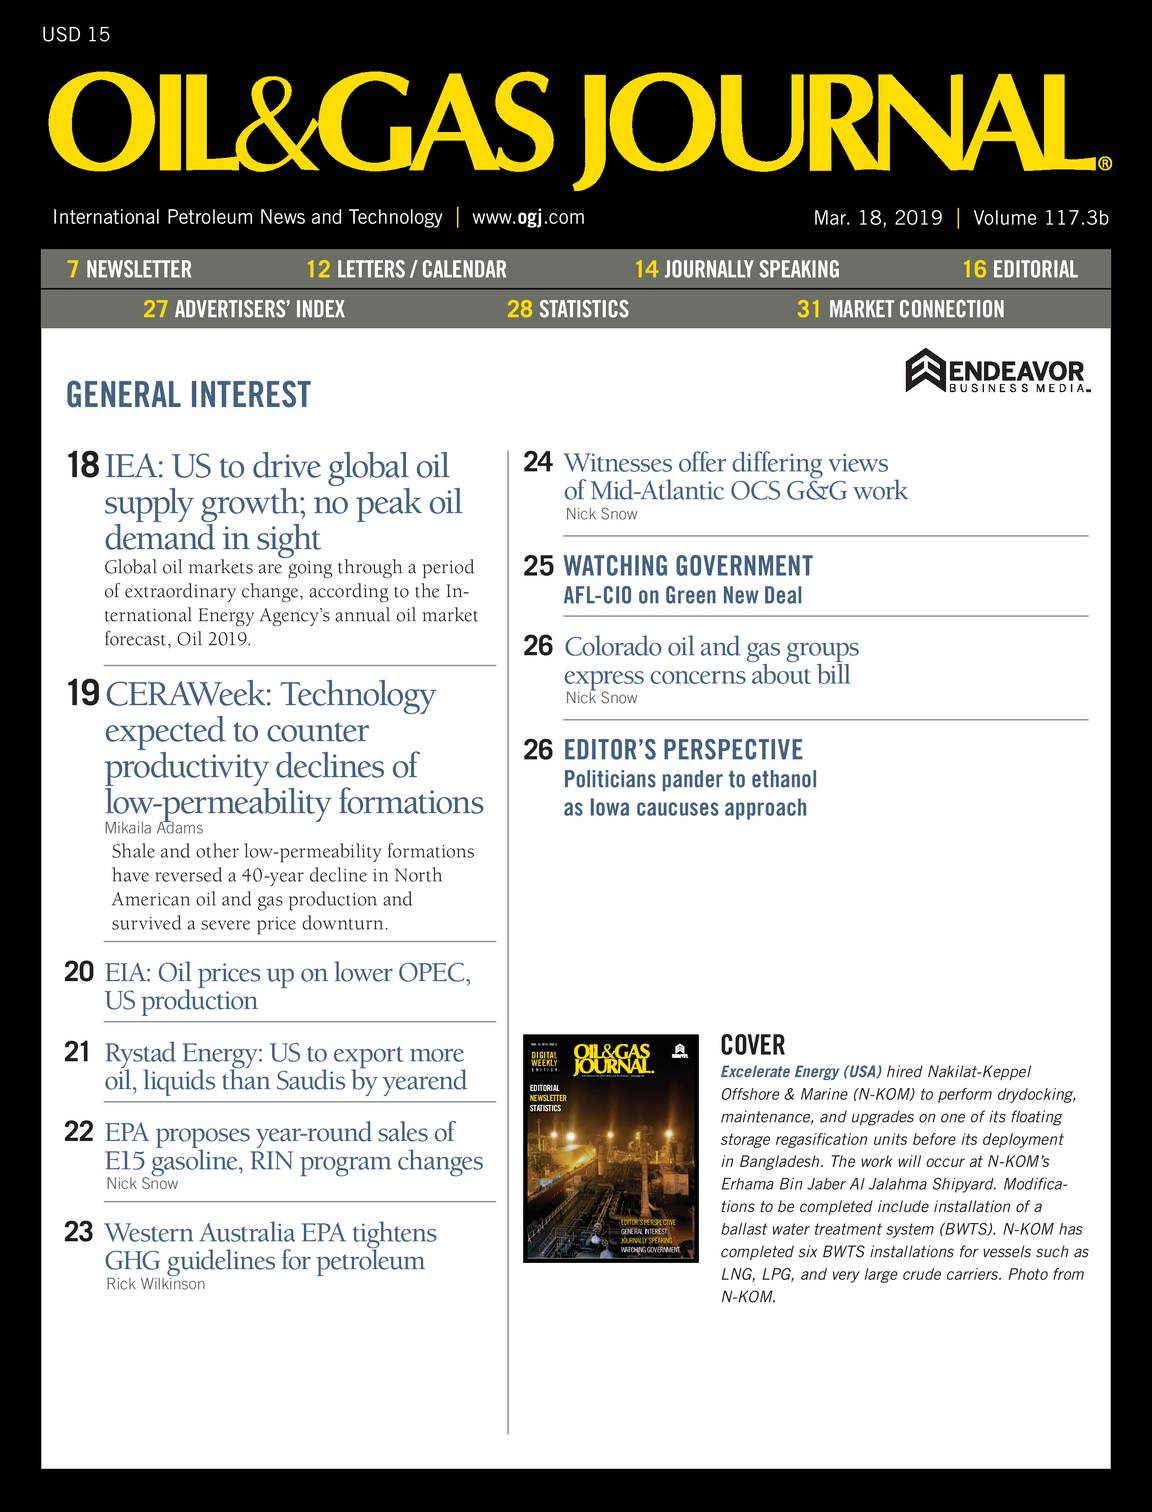 Oil & Gas Journal - March 18, 2019 - page 3